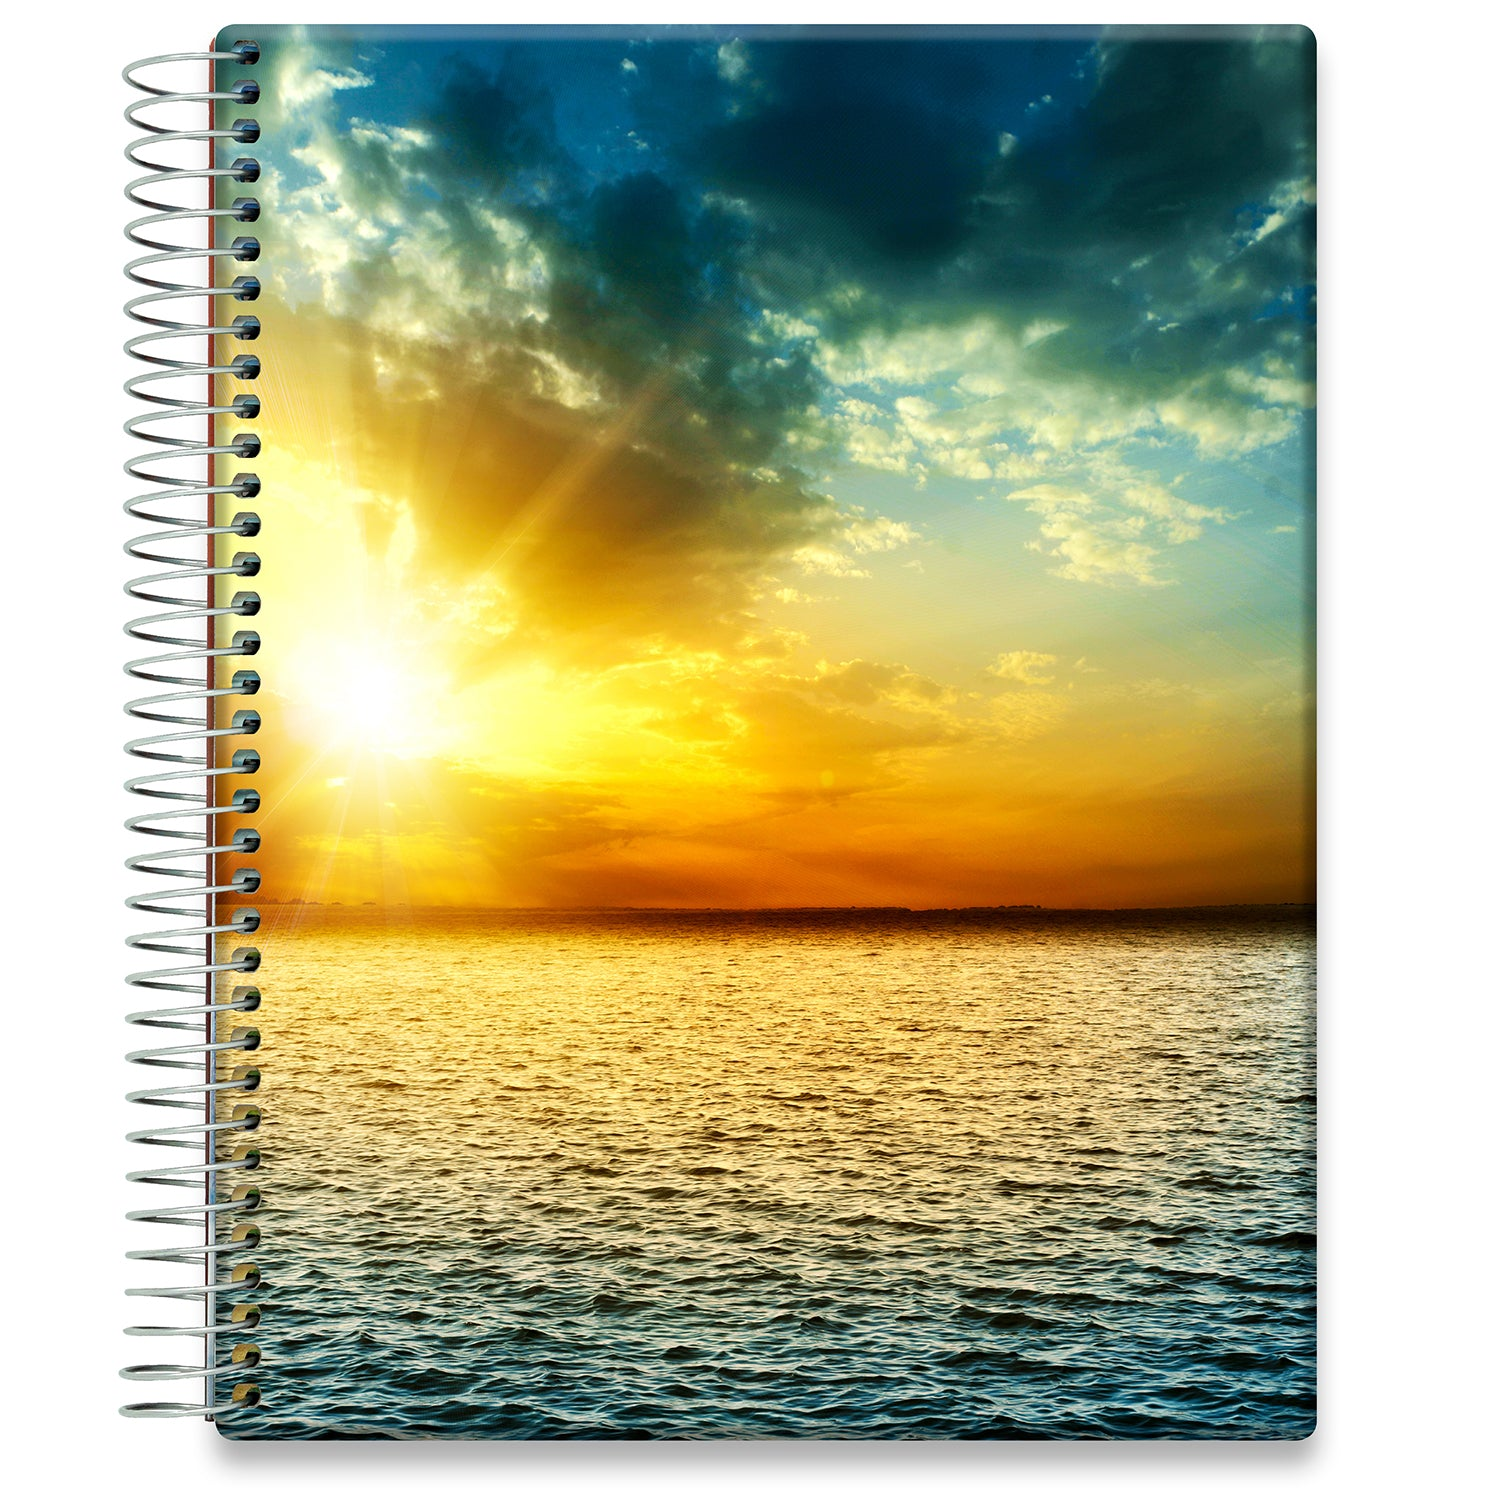 Planner 2021-2022 • April 2021 to June 2022 Academic Year • 8.5x11 Hardcover • Ocean Sunset